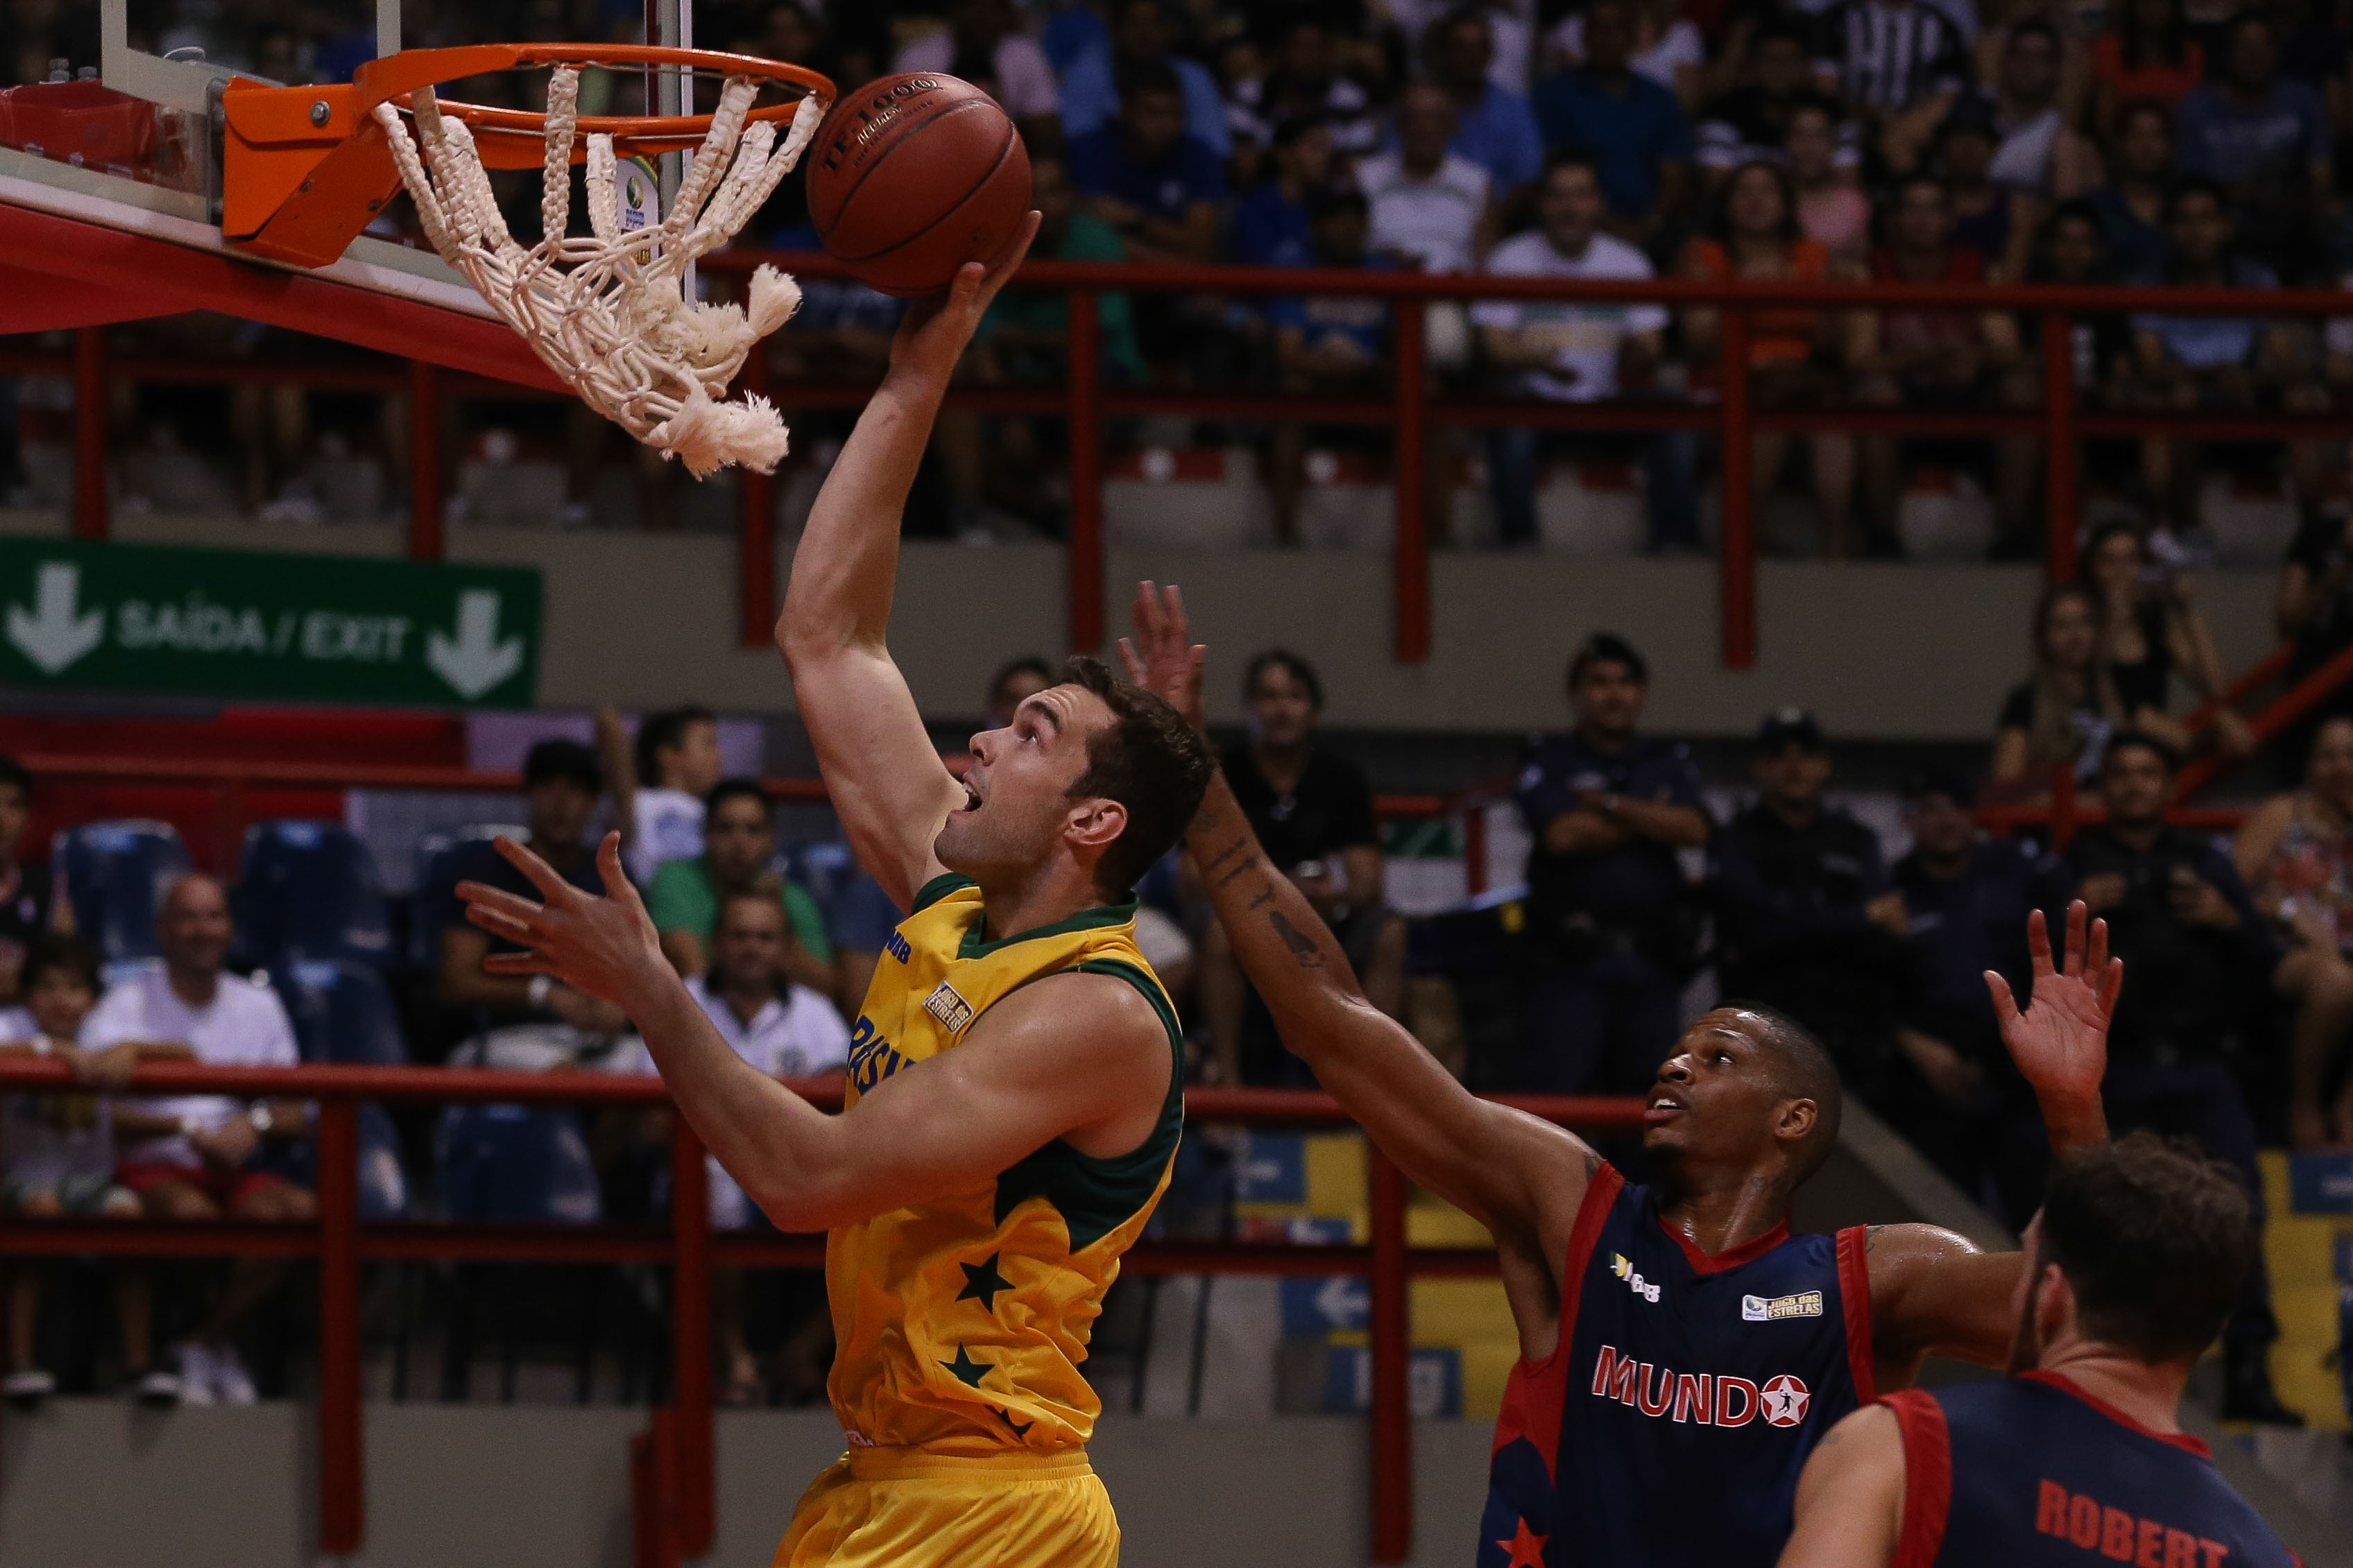 Murilo Becker, do NBB Brasil, e Shamell, do NBB Mundo